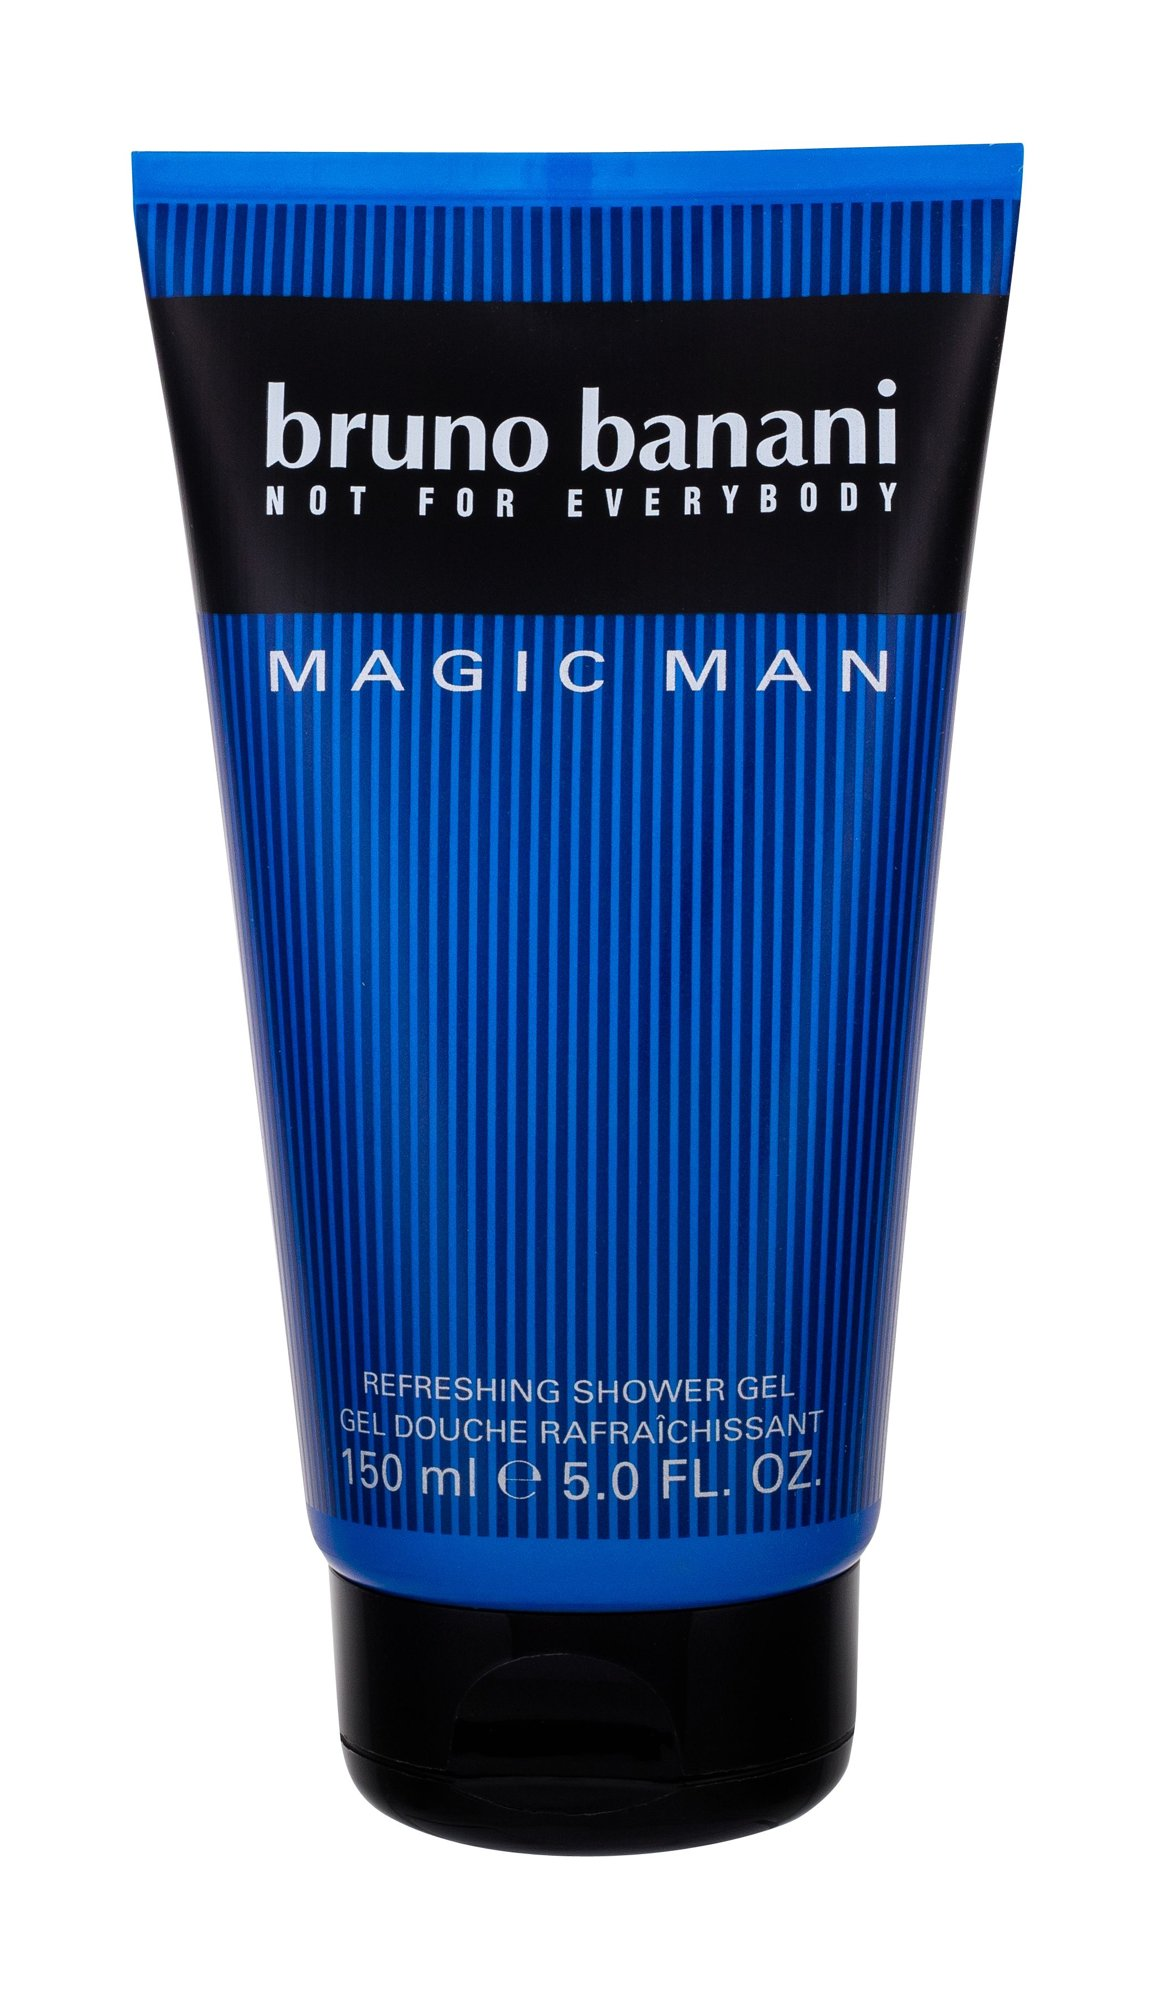 Bruno Banani Magic Man, Sprchovací gél 150ml